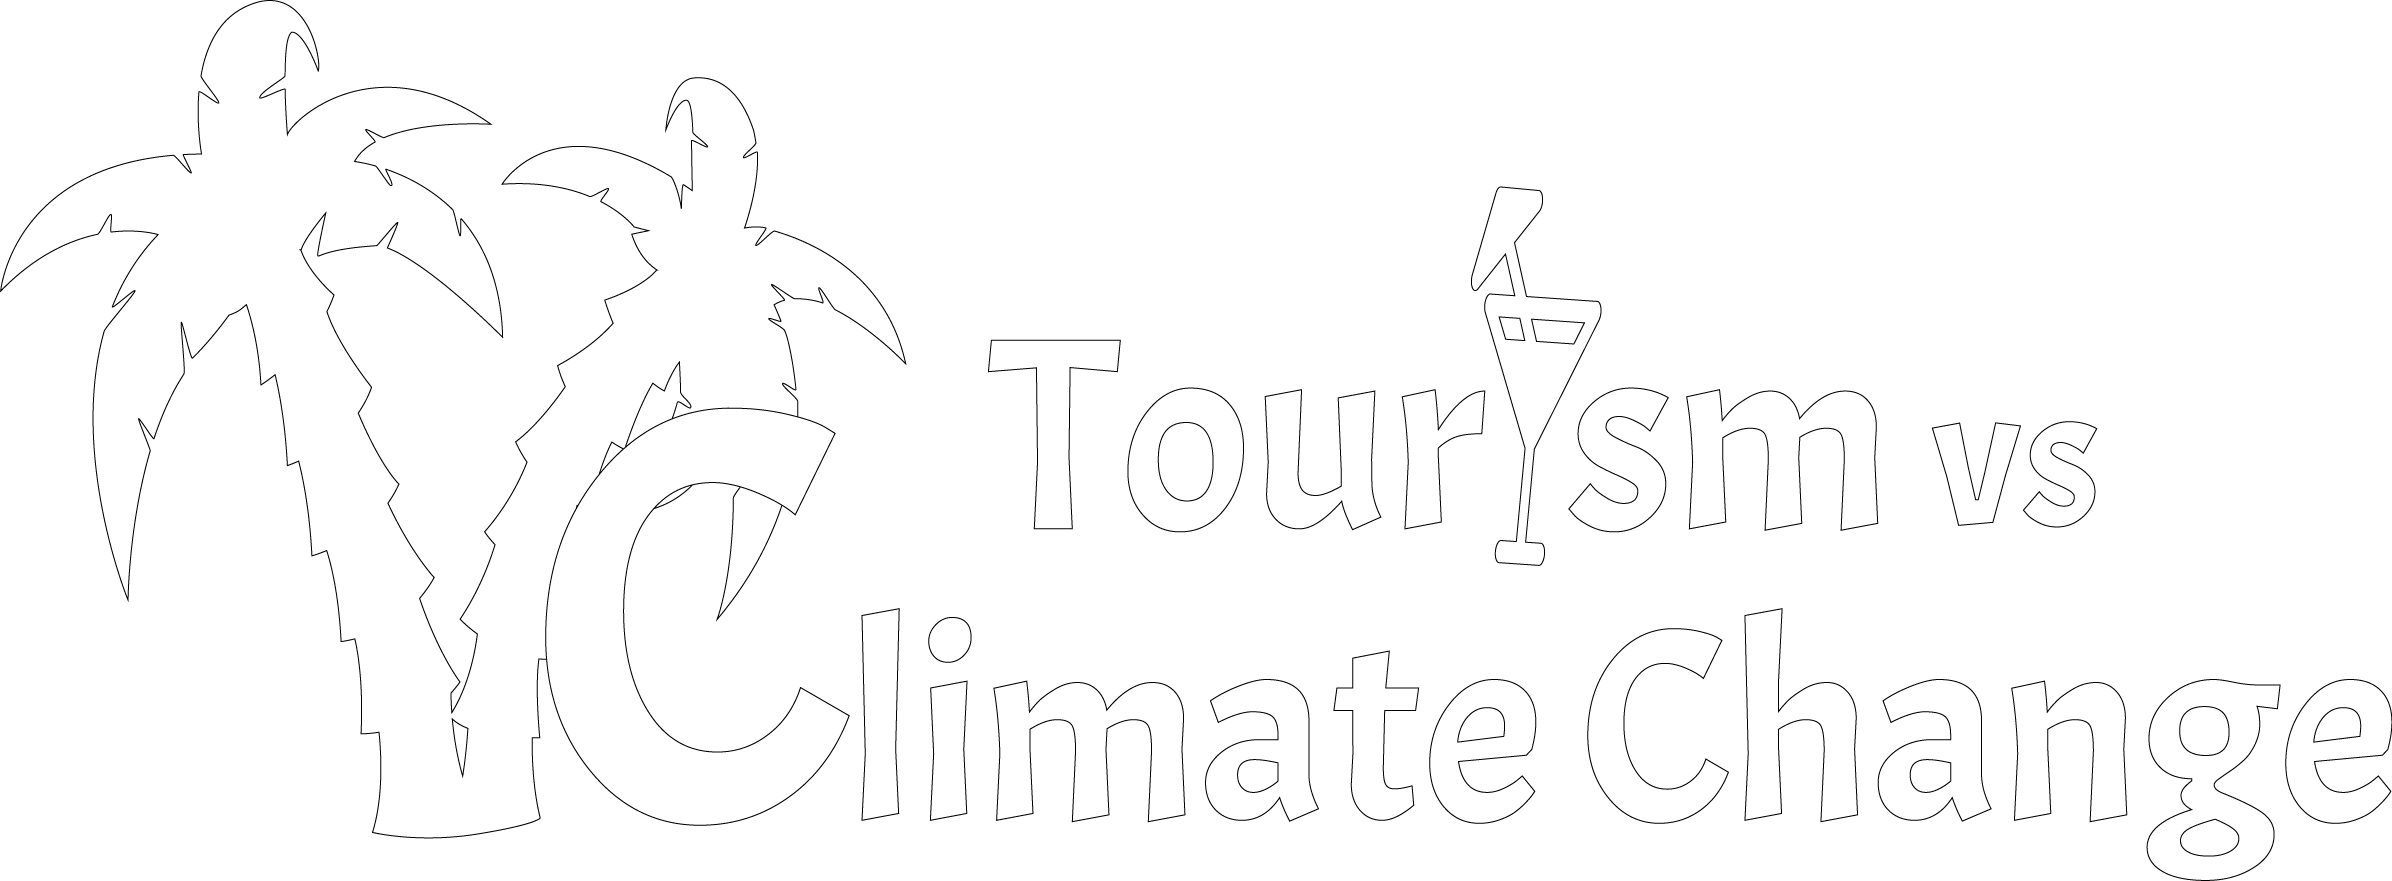 Tourism vs our changing climate